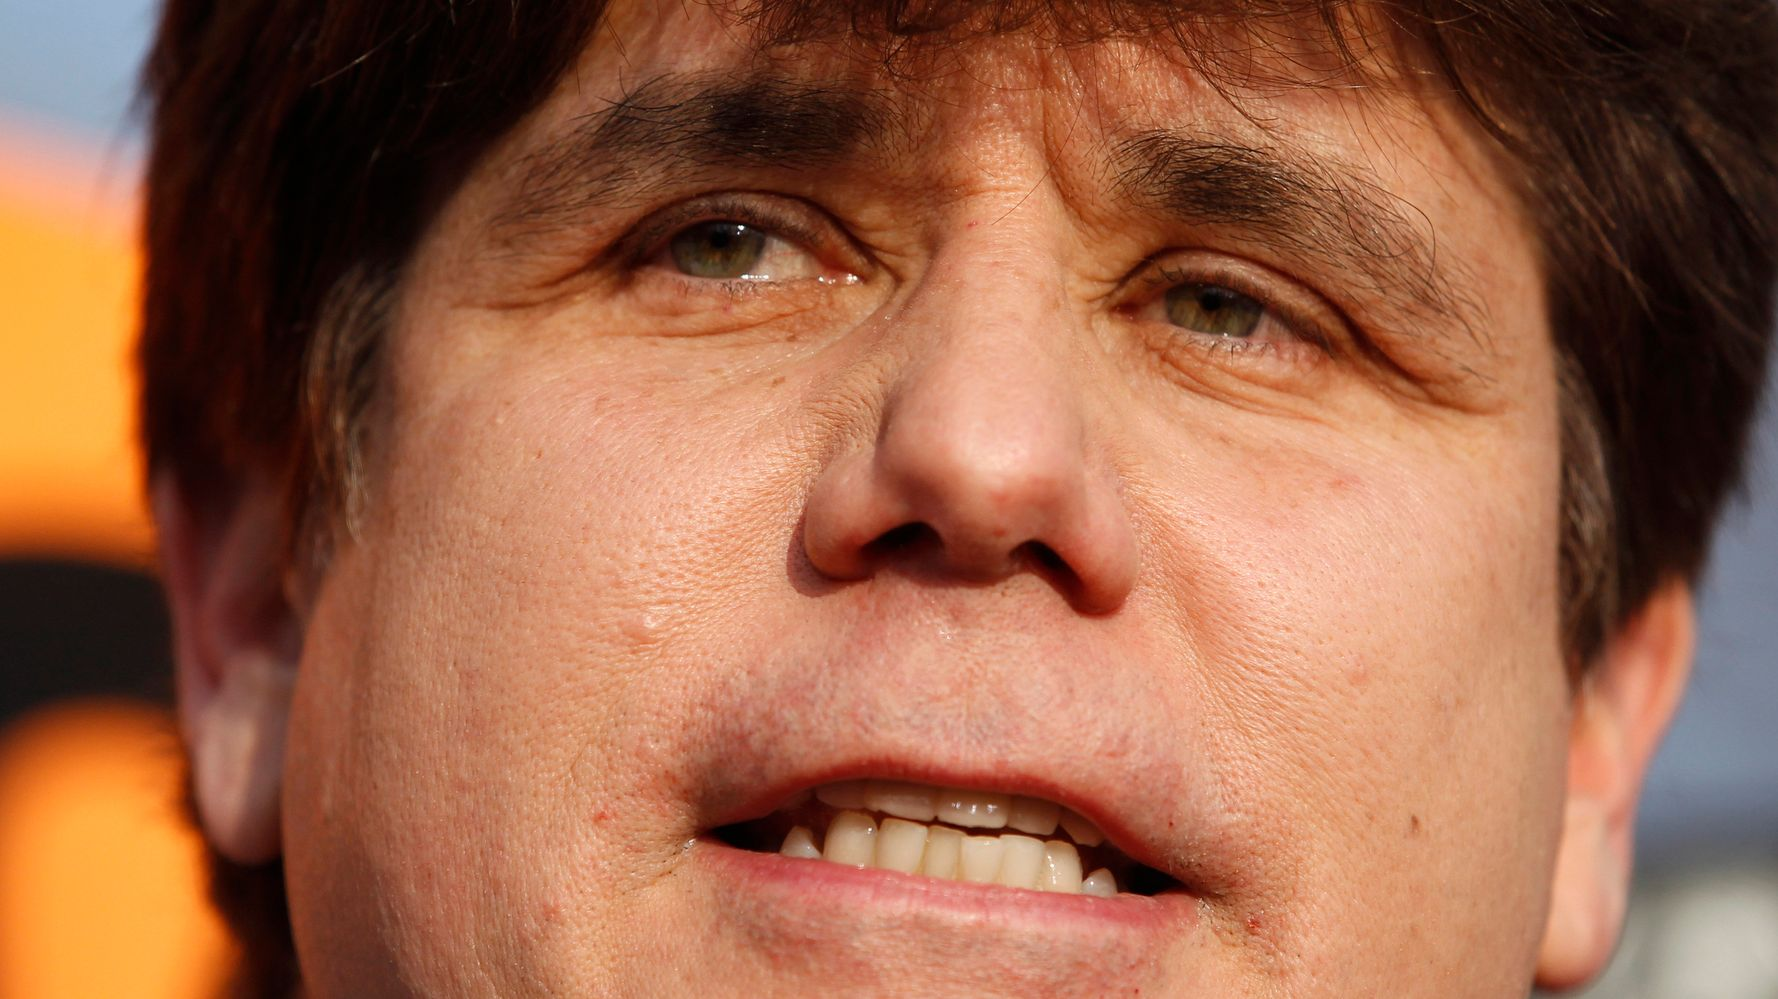 Trump Commutes Sentence Of Rob Blagojevich, Former Illinois Gov. Who Tried To Sell Senate Seat